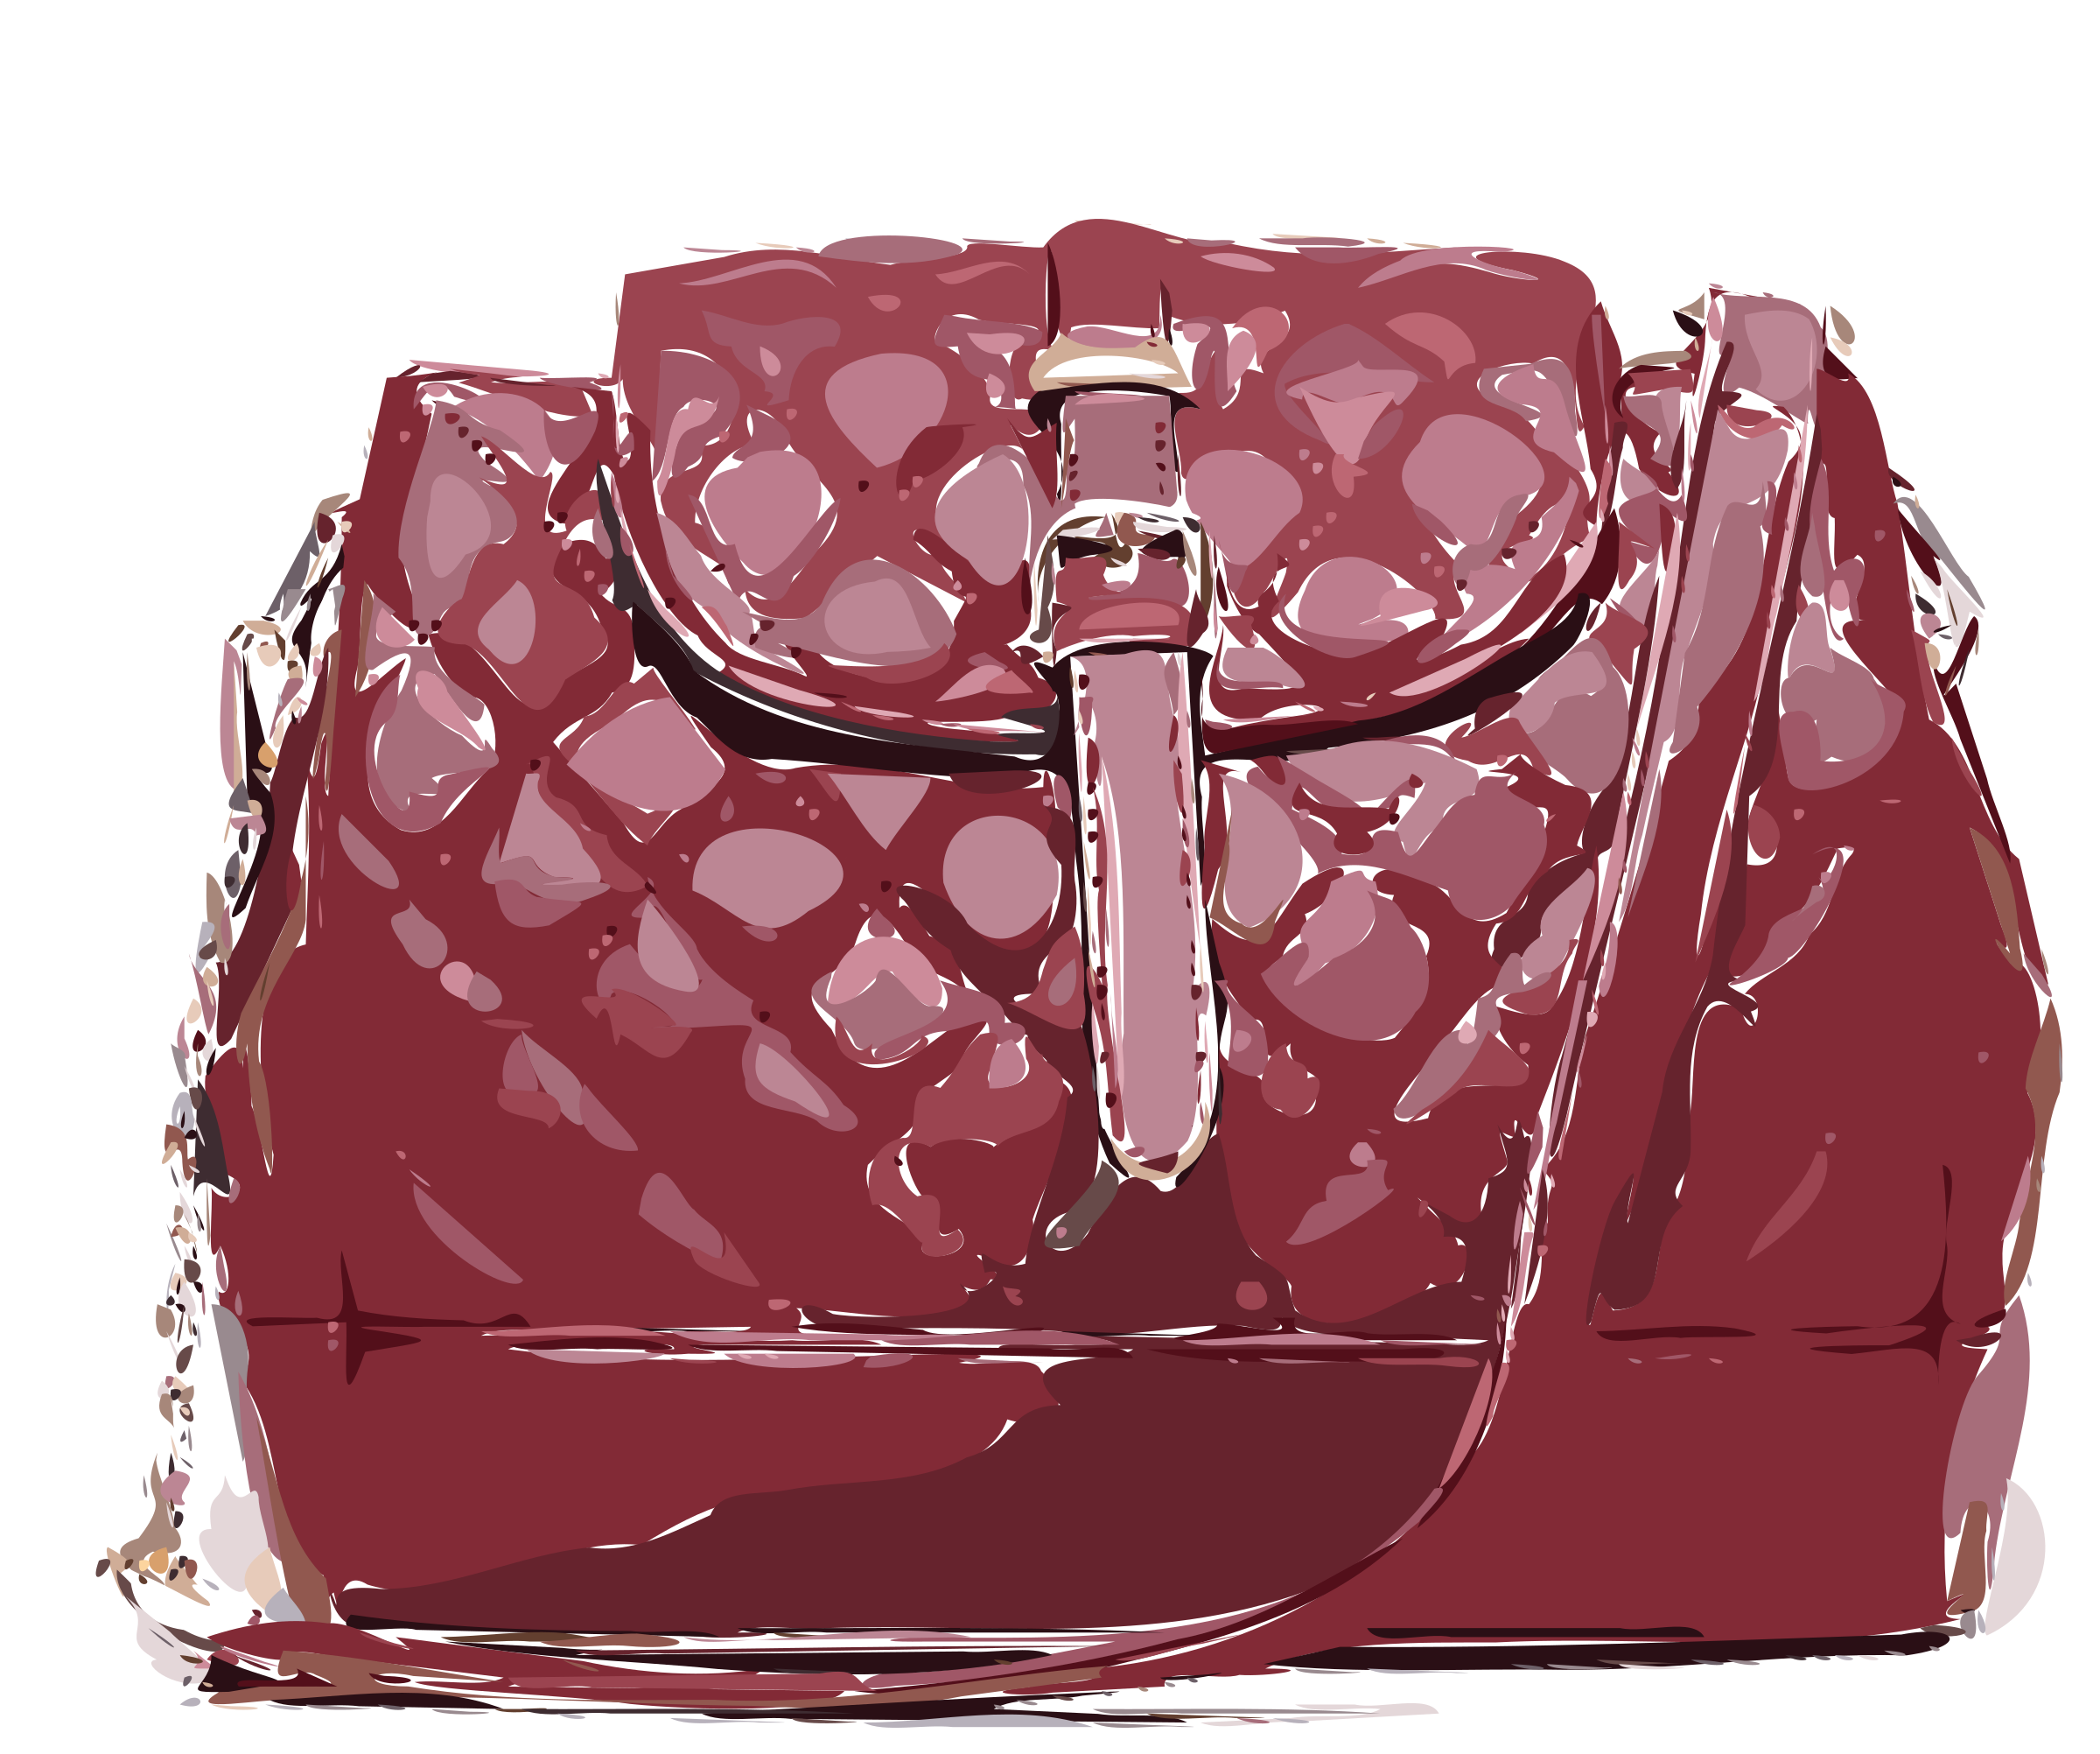 Red Patterned Leather Bag by rejon